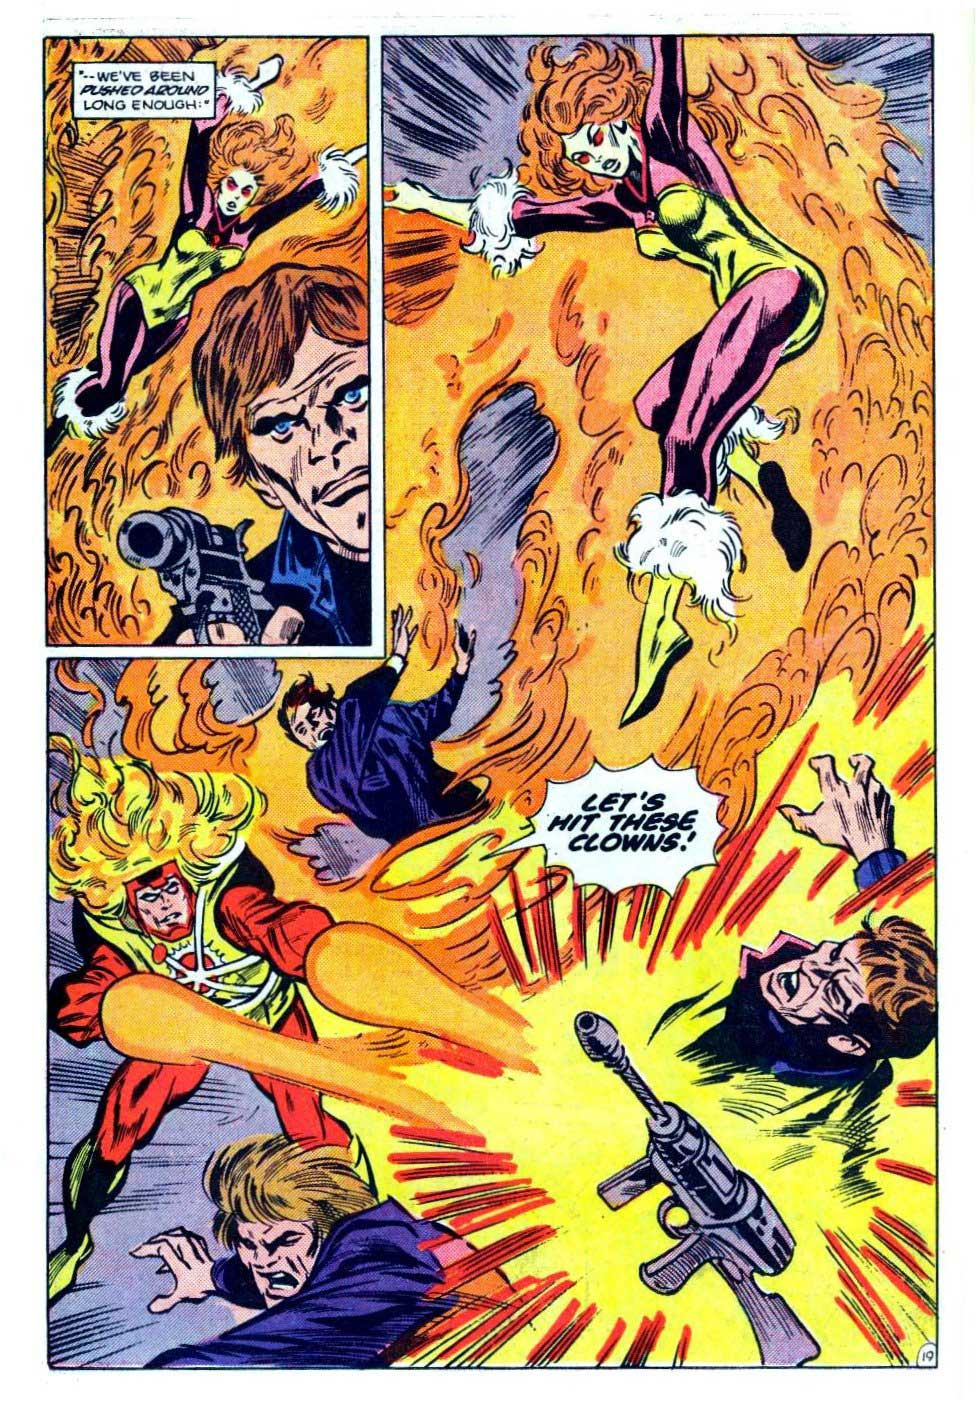 Fury of Firestorm #31 by Gerry Conway, George Tuska and Alex Nino